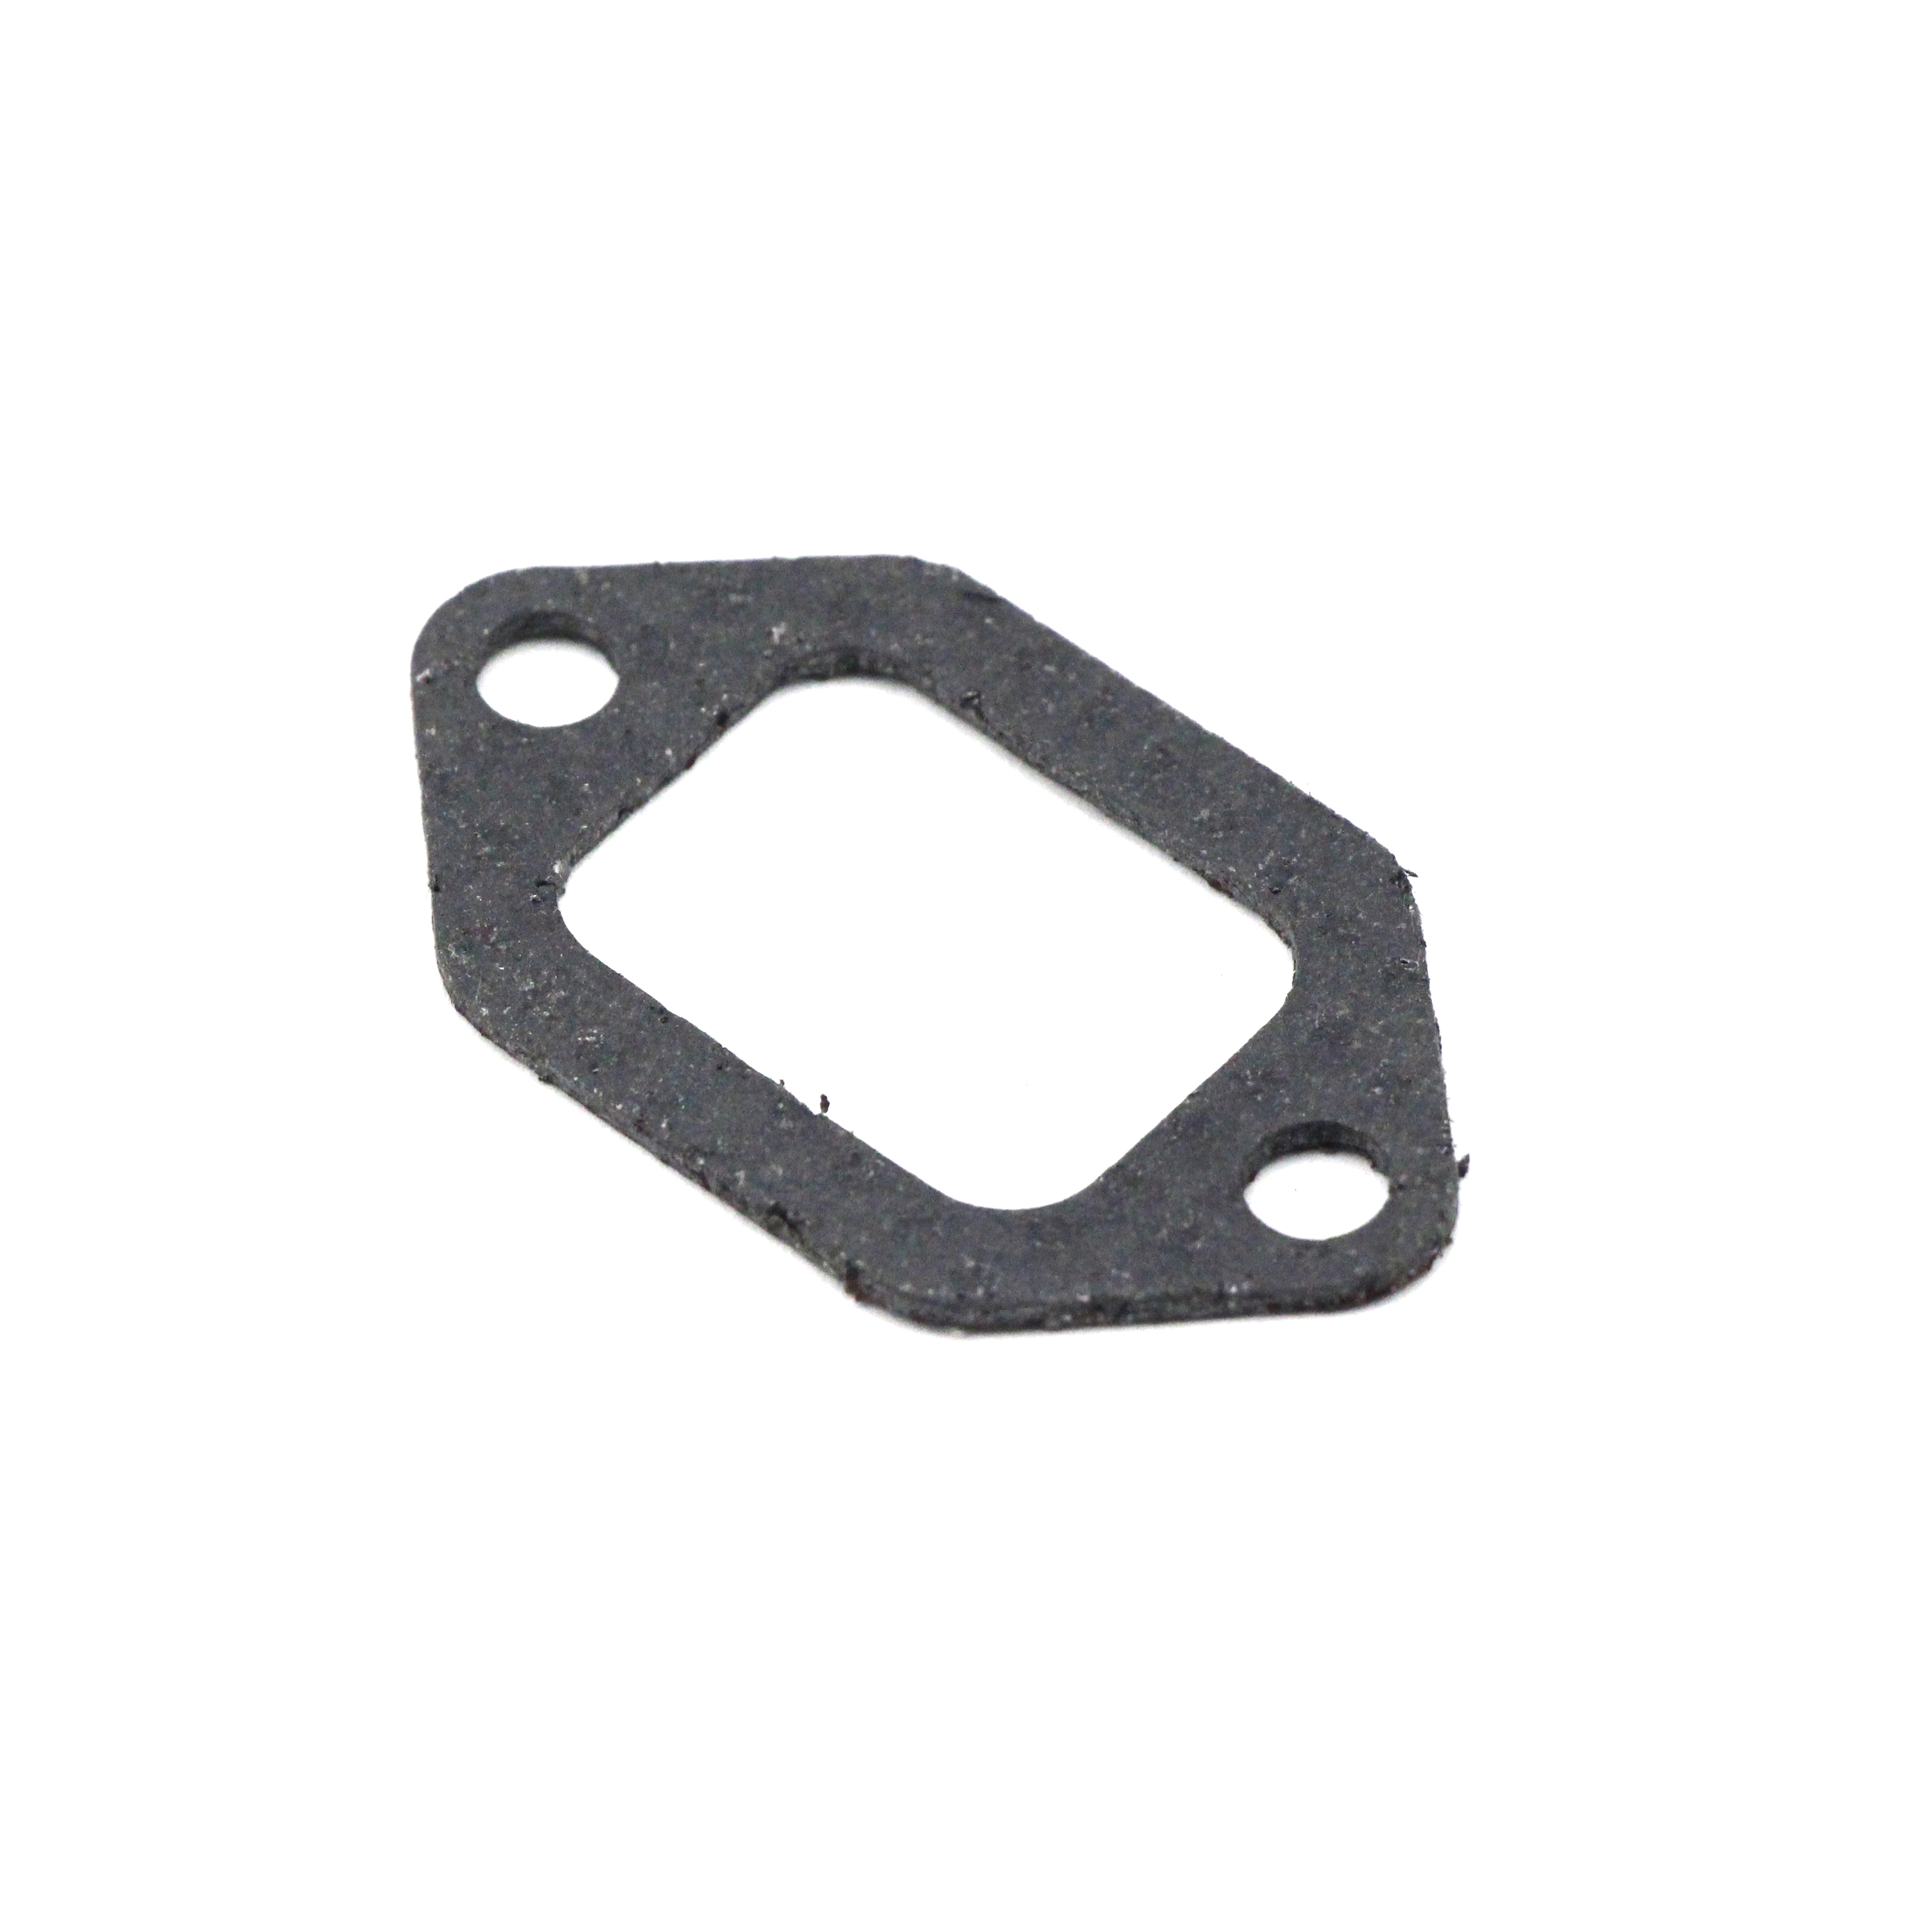 Muffler Gasket For Stihl 034 036 038 044 046 064 066 MS340 MS341 MS360  MS361 MS640 MS650 MS660 MS380 MS381 MS440 MS441 MS460 TS400 Chainsaw 1125  149